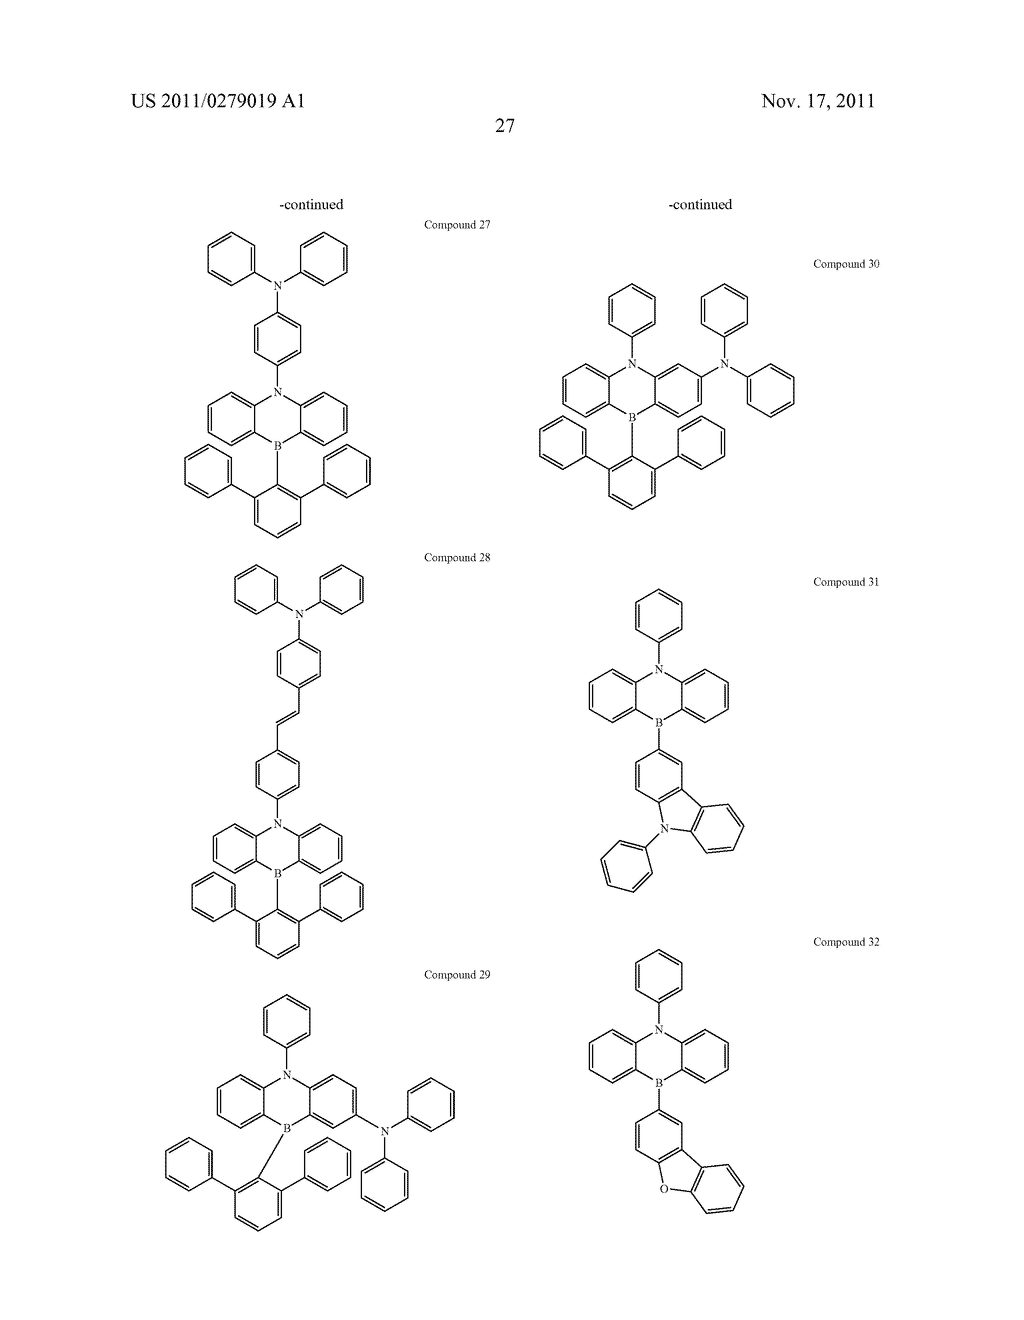 AZABORININE COMPOUNDS AS HOST MATERIALS AND DOPANTS FOR PHOLEDS - diagram, schematic, and image 34